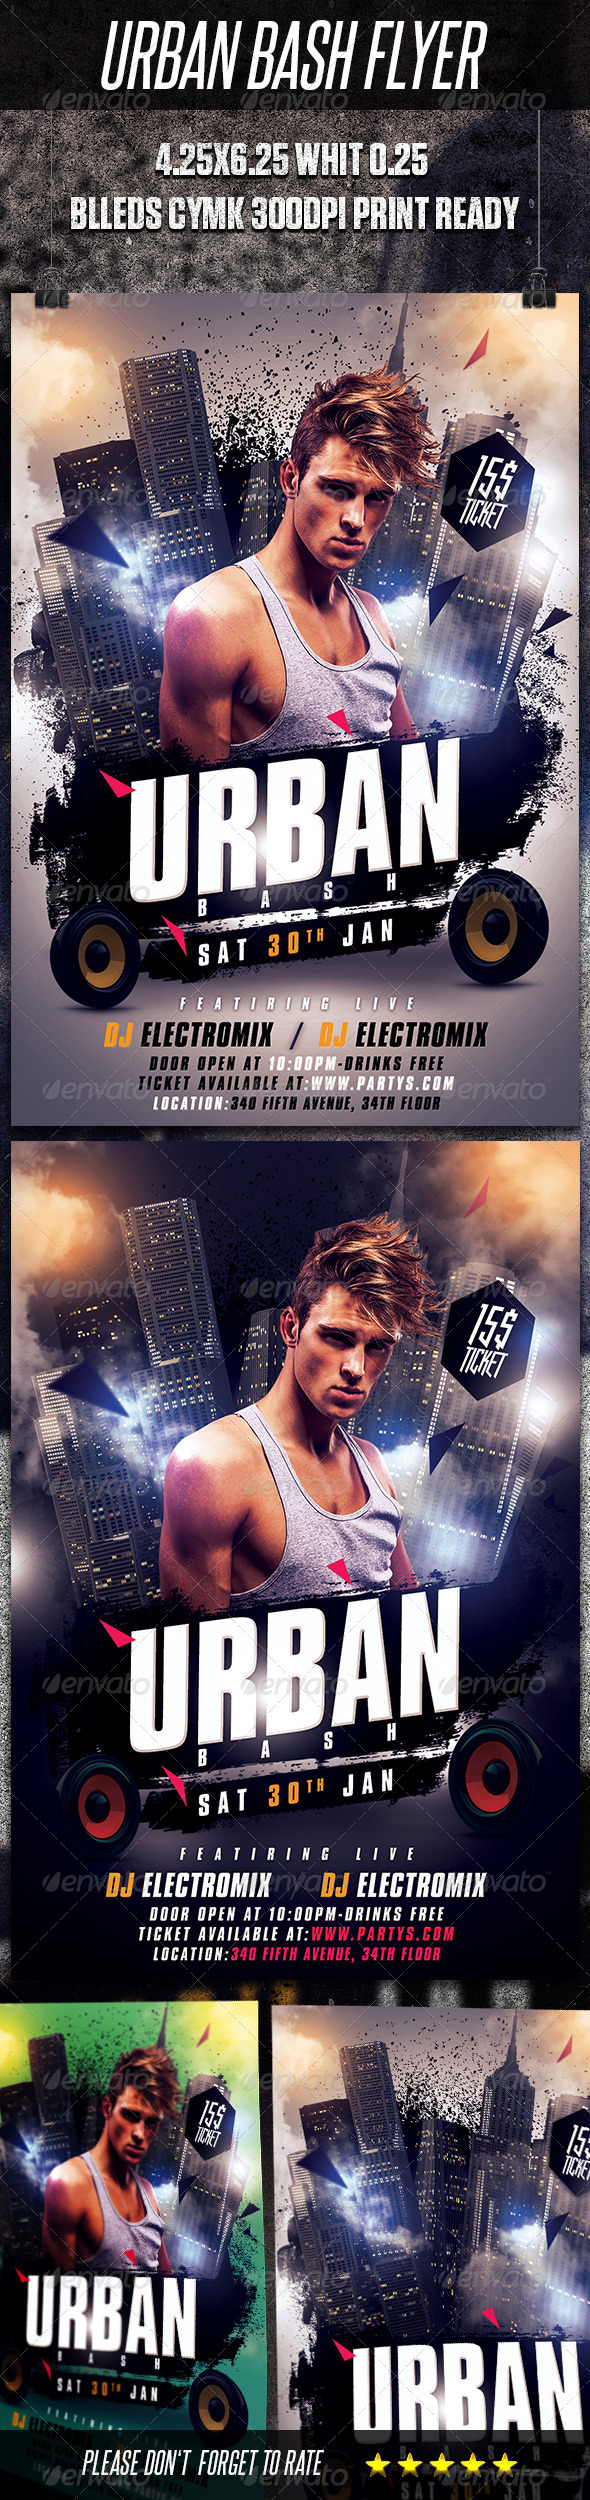 GraphicRiver Urban Bash Flyer Template 6423257